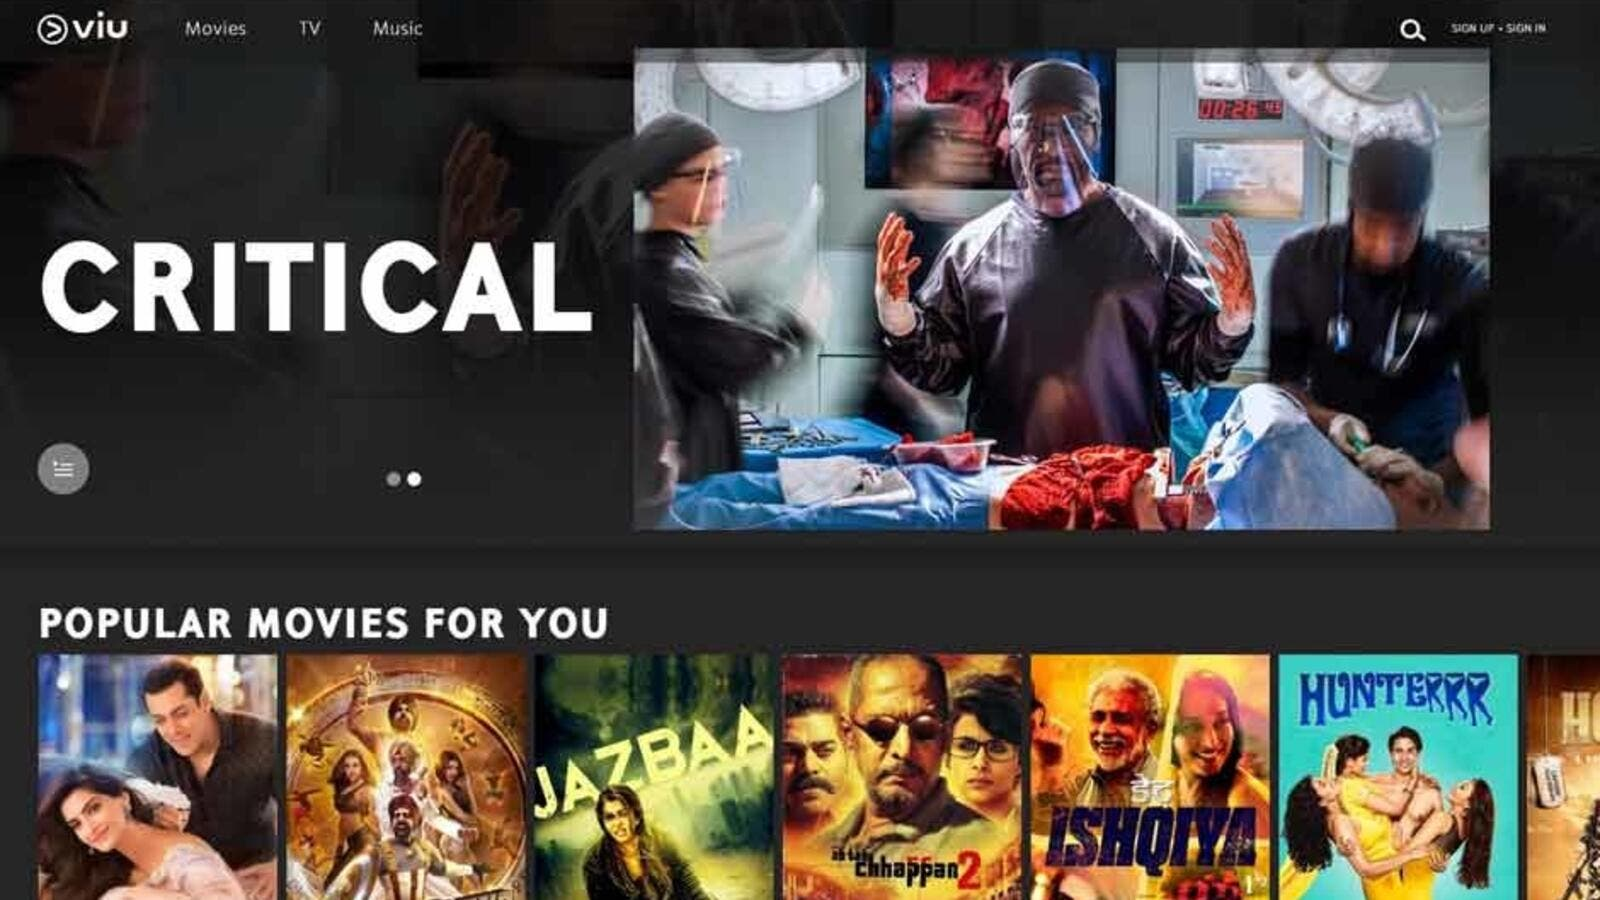 Vuclip launches Viu streaming service across the Middle East